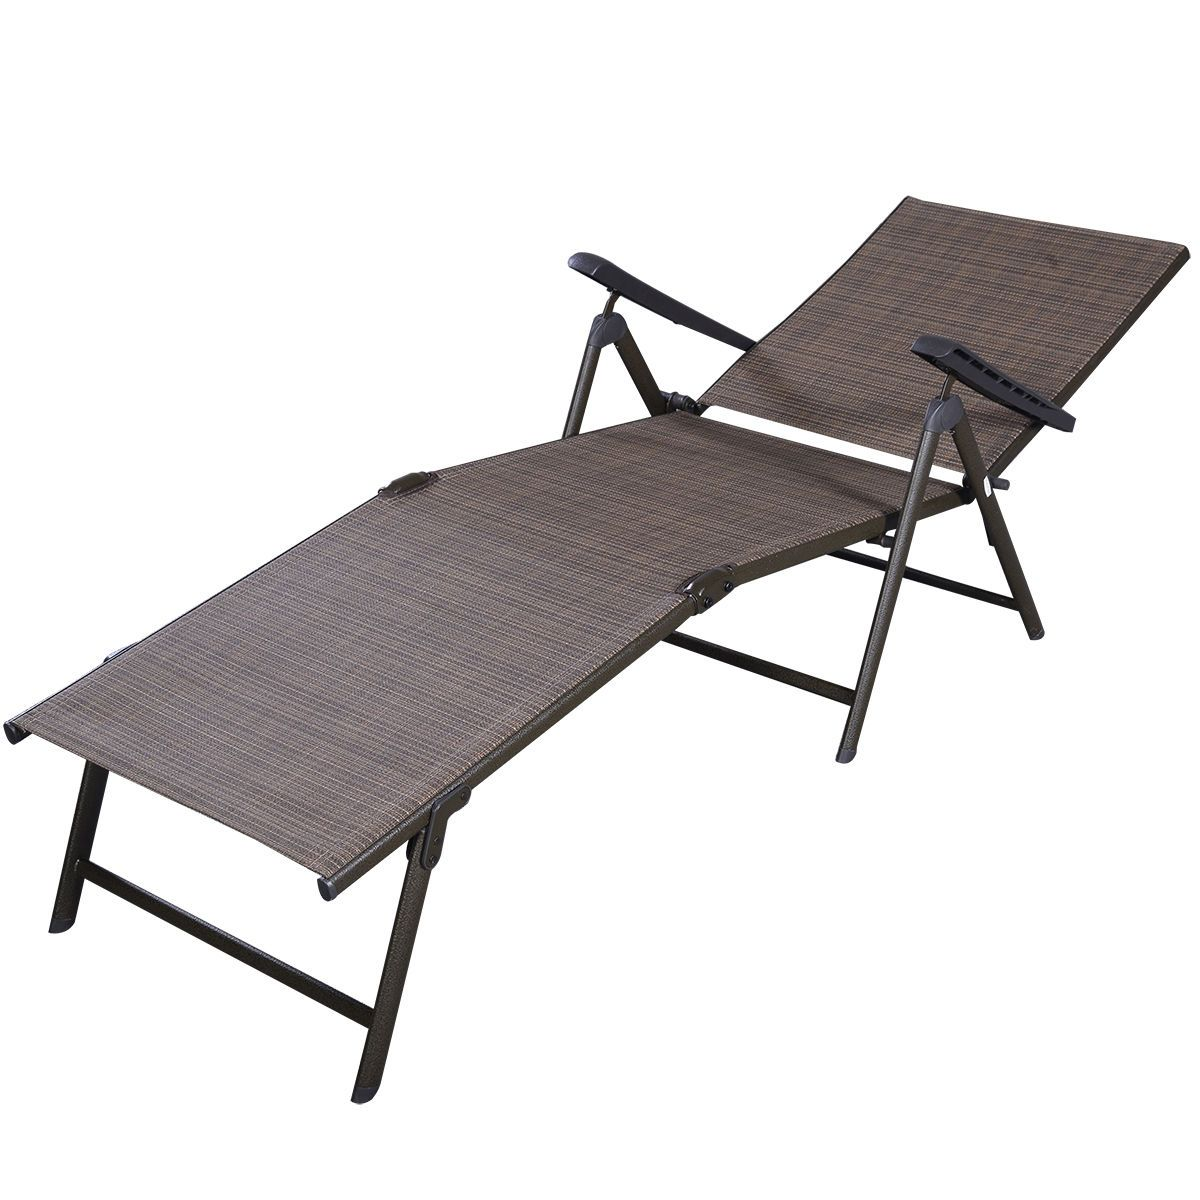 Adjustable Folding Pool Chaise Lounge Recliner Chair